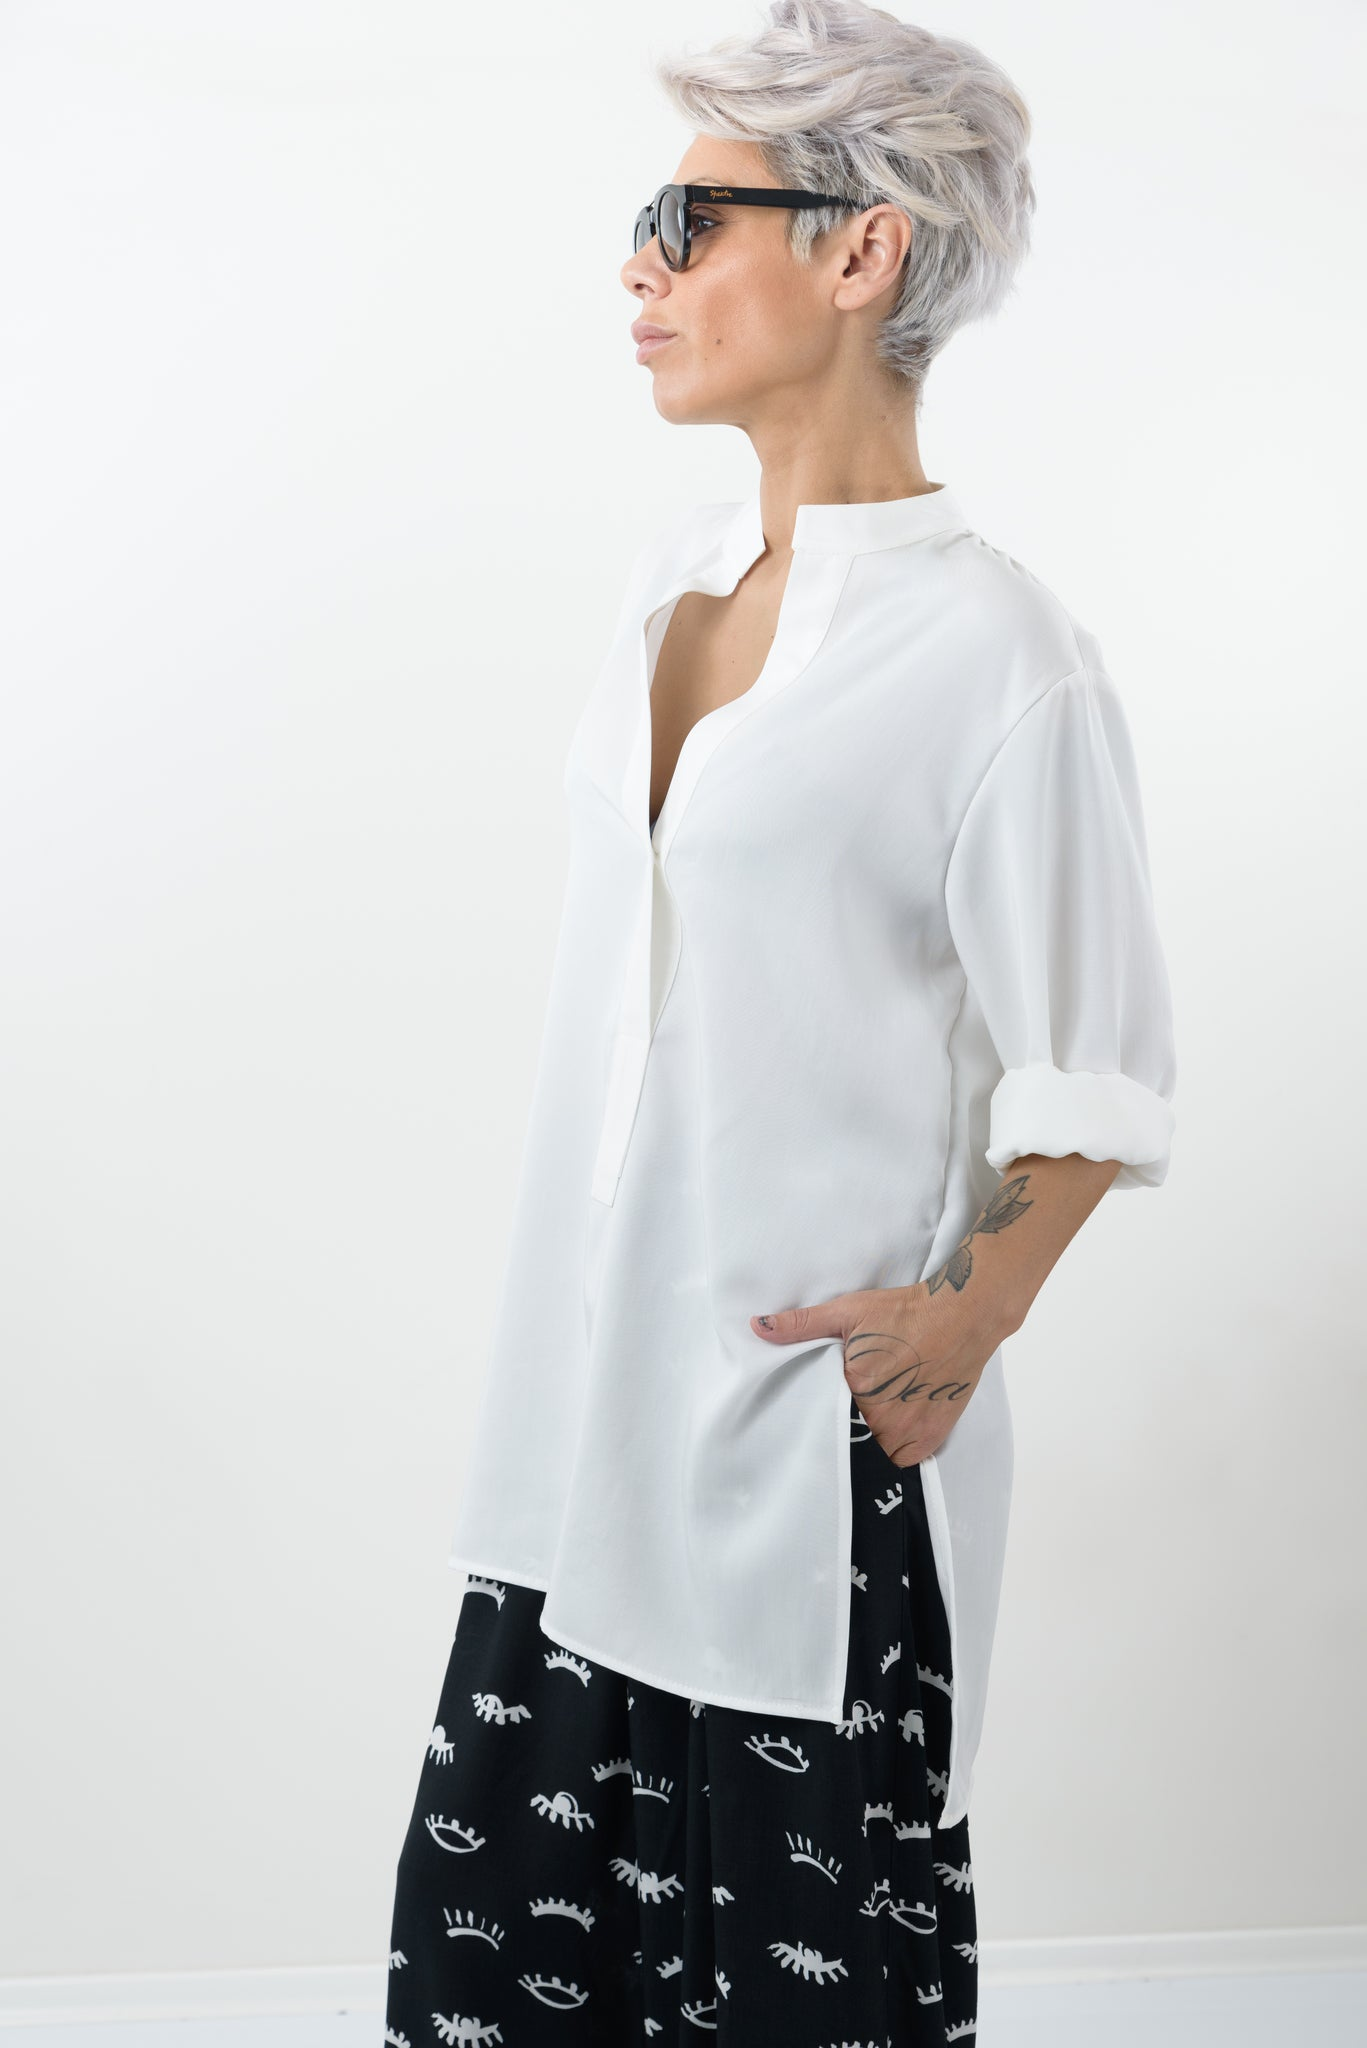 White Summer Plus Size Women Tunic Shirt - Clothes By Locker Room